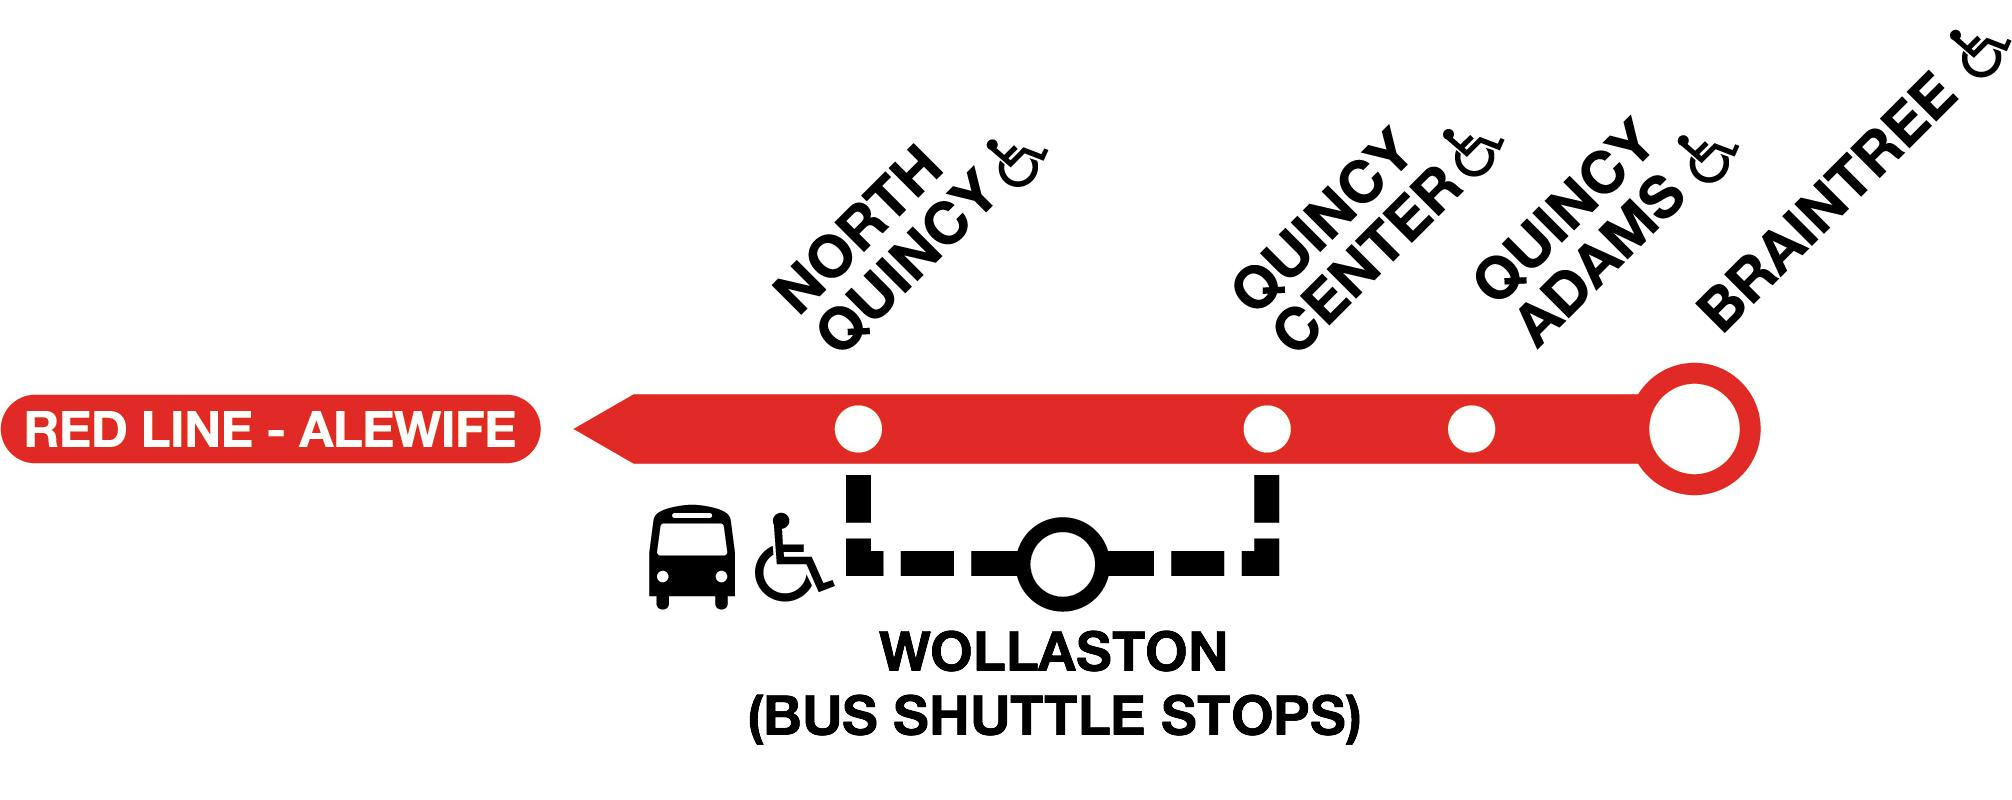 Wollaston shuttle route/Red Line diagram